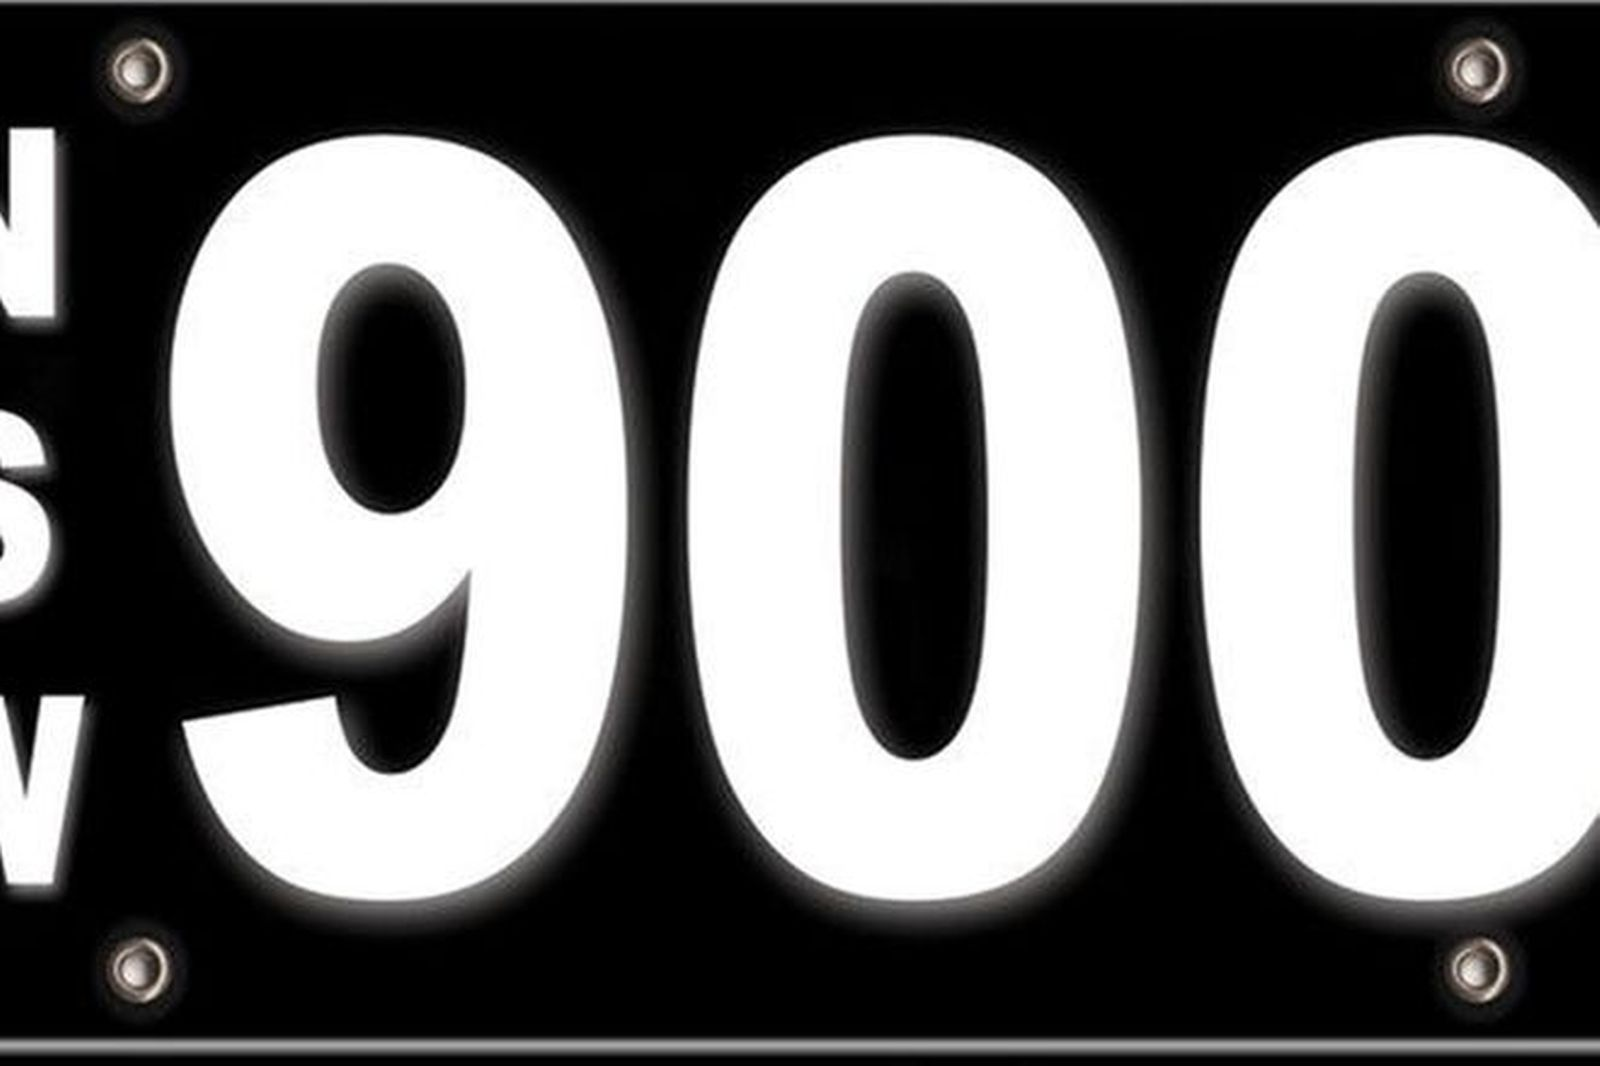 RTA NSW Numerical Motorcycle Number Plates '900'